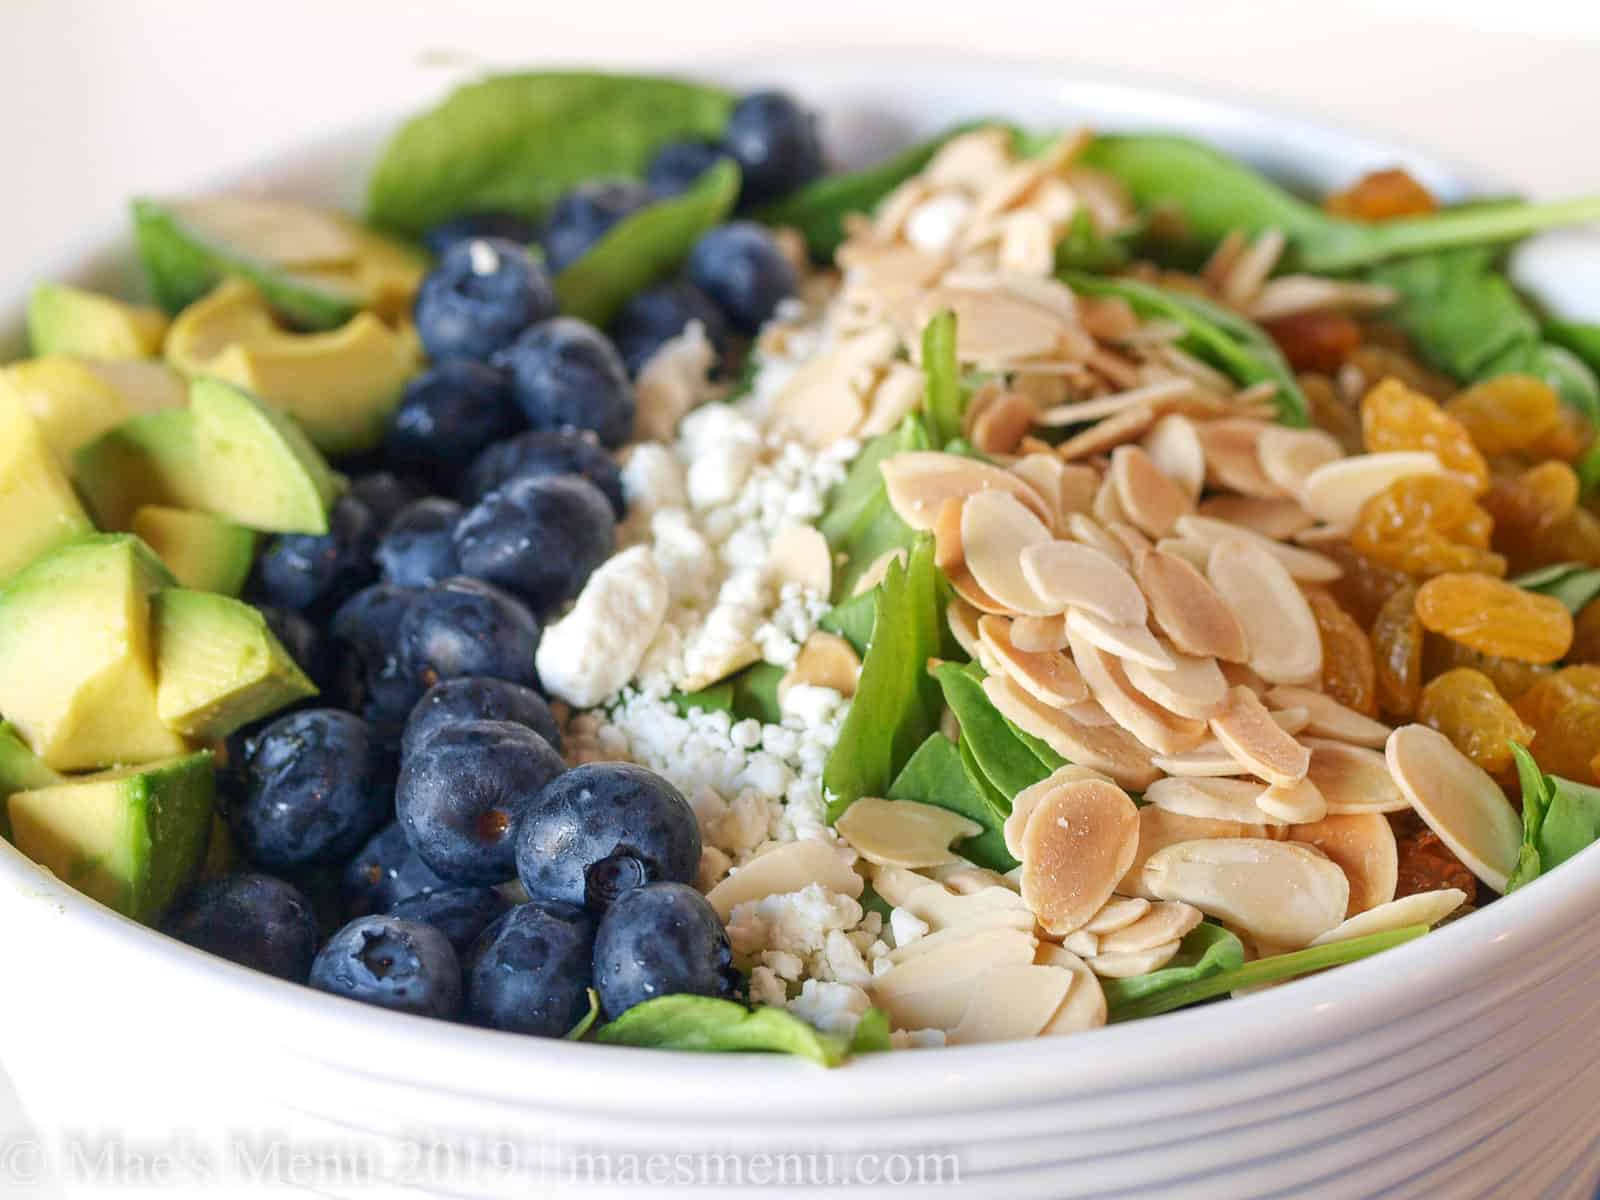 Up-close shot of Blueberry & Avocado Spinach Salad.